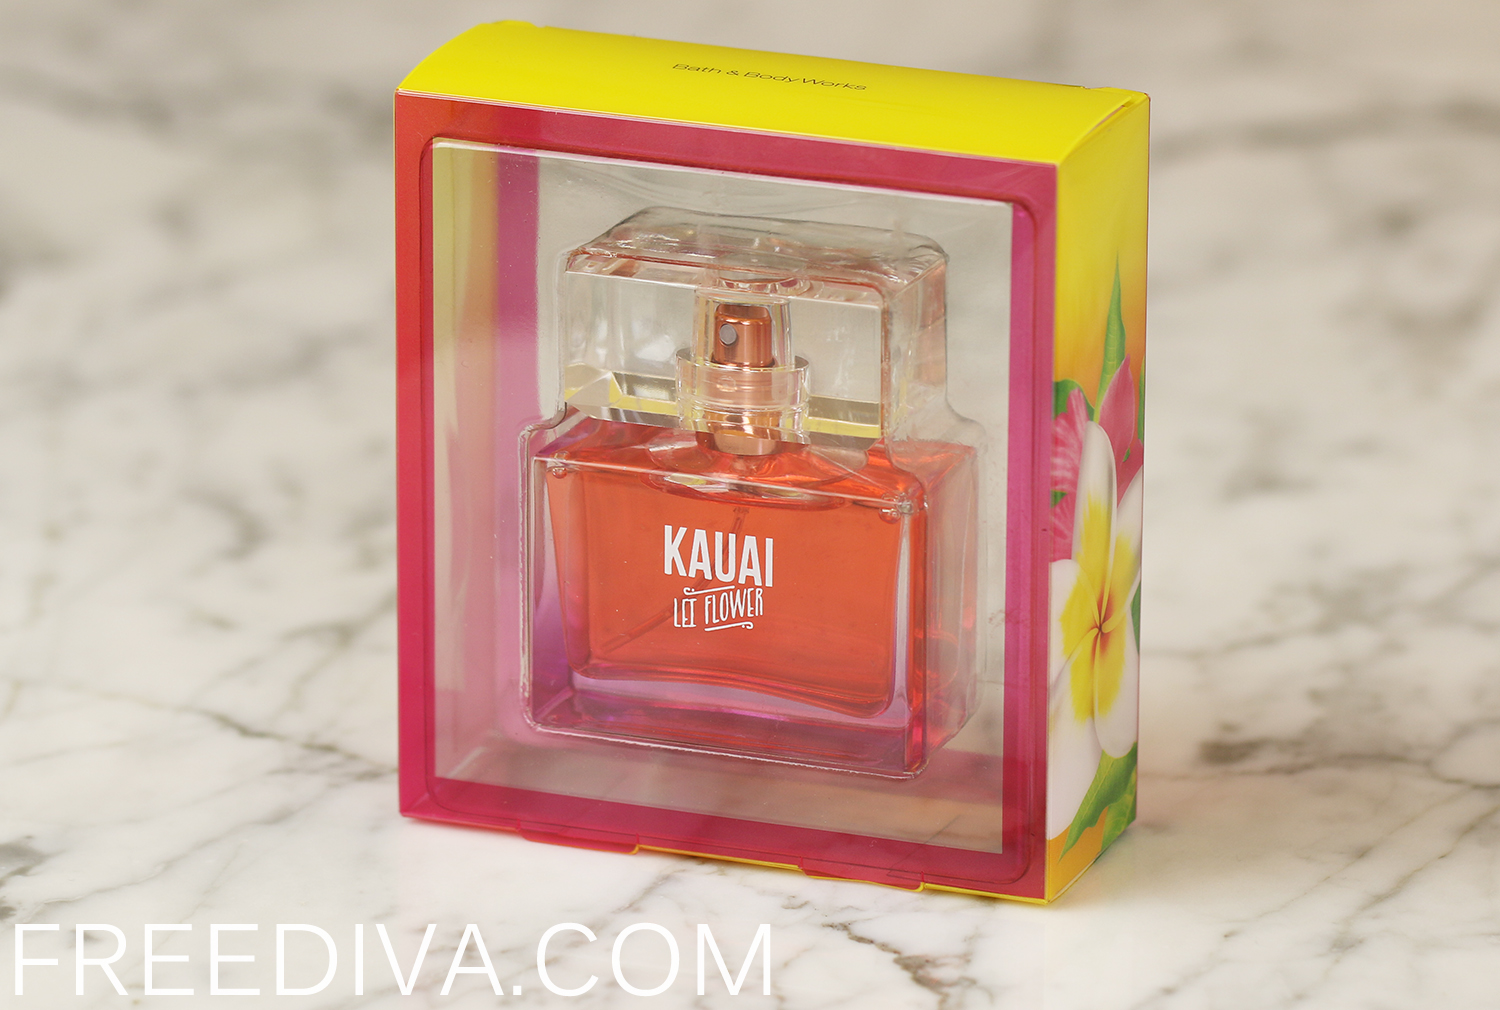 Kauai Lei Flower Mini Perfume Bath & Body Works